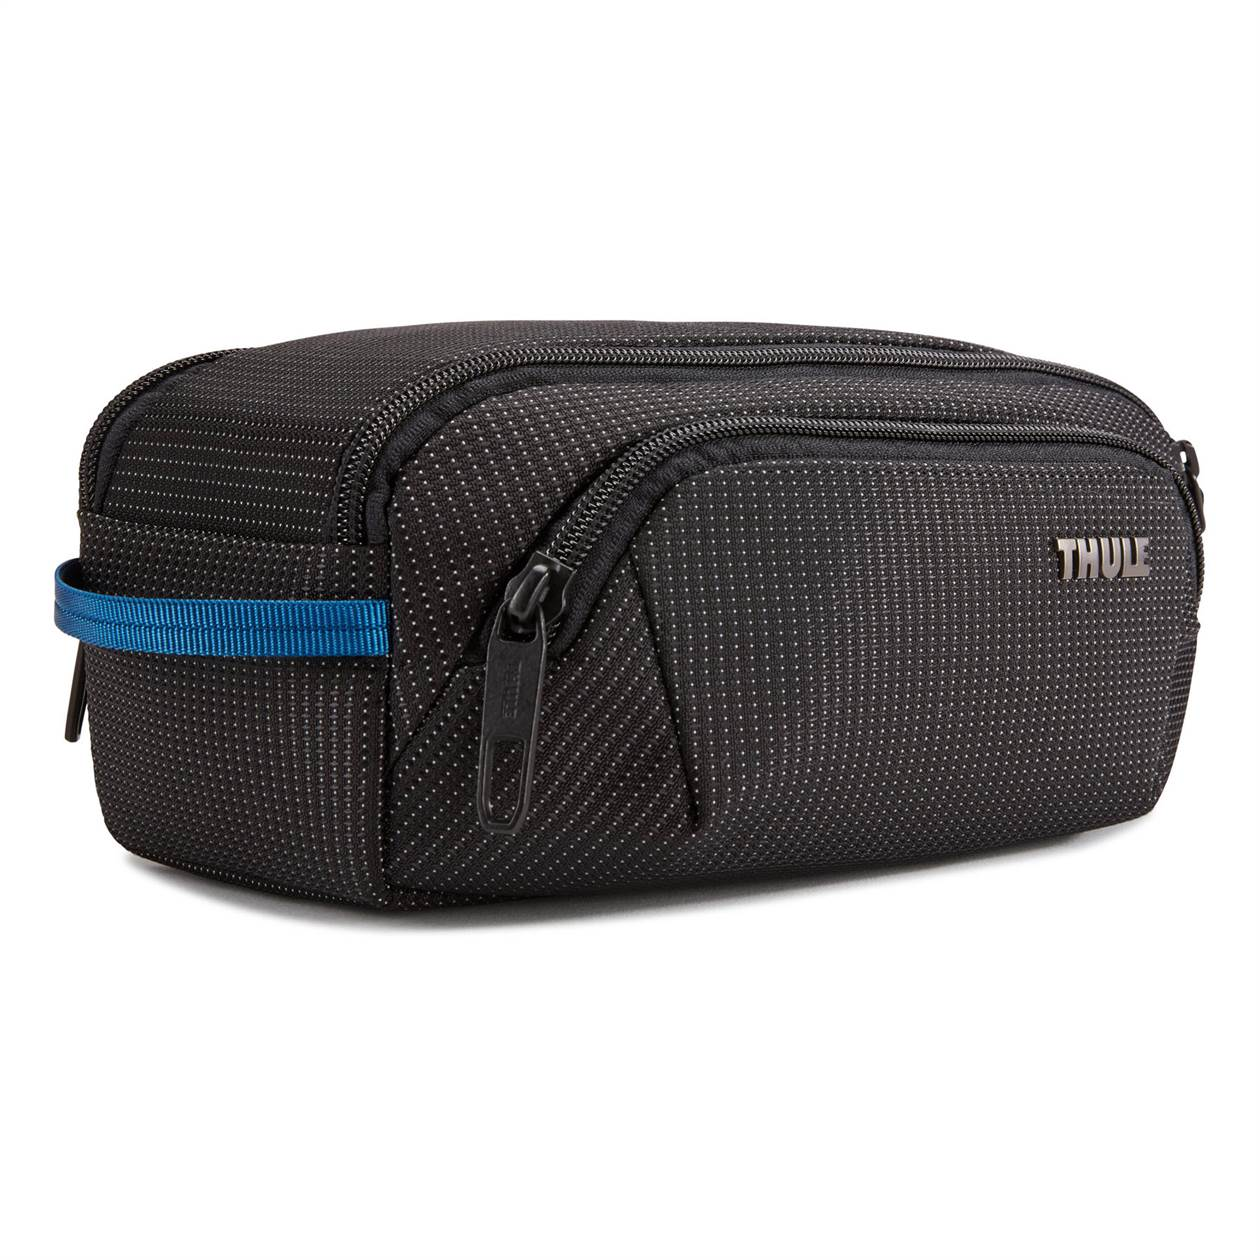 CROSSOVER 2 TOILETRY BAG